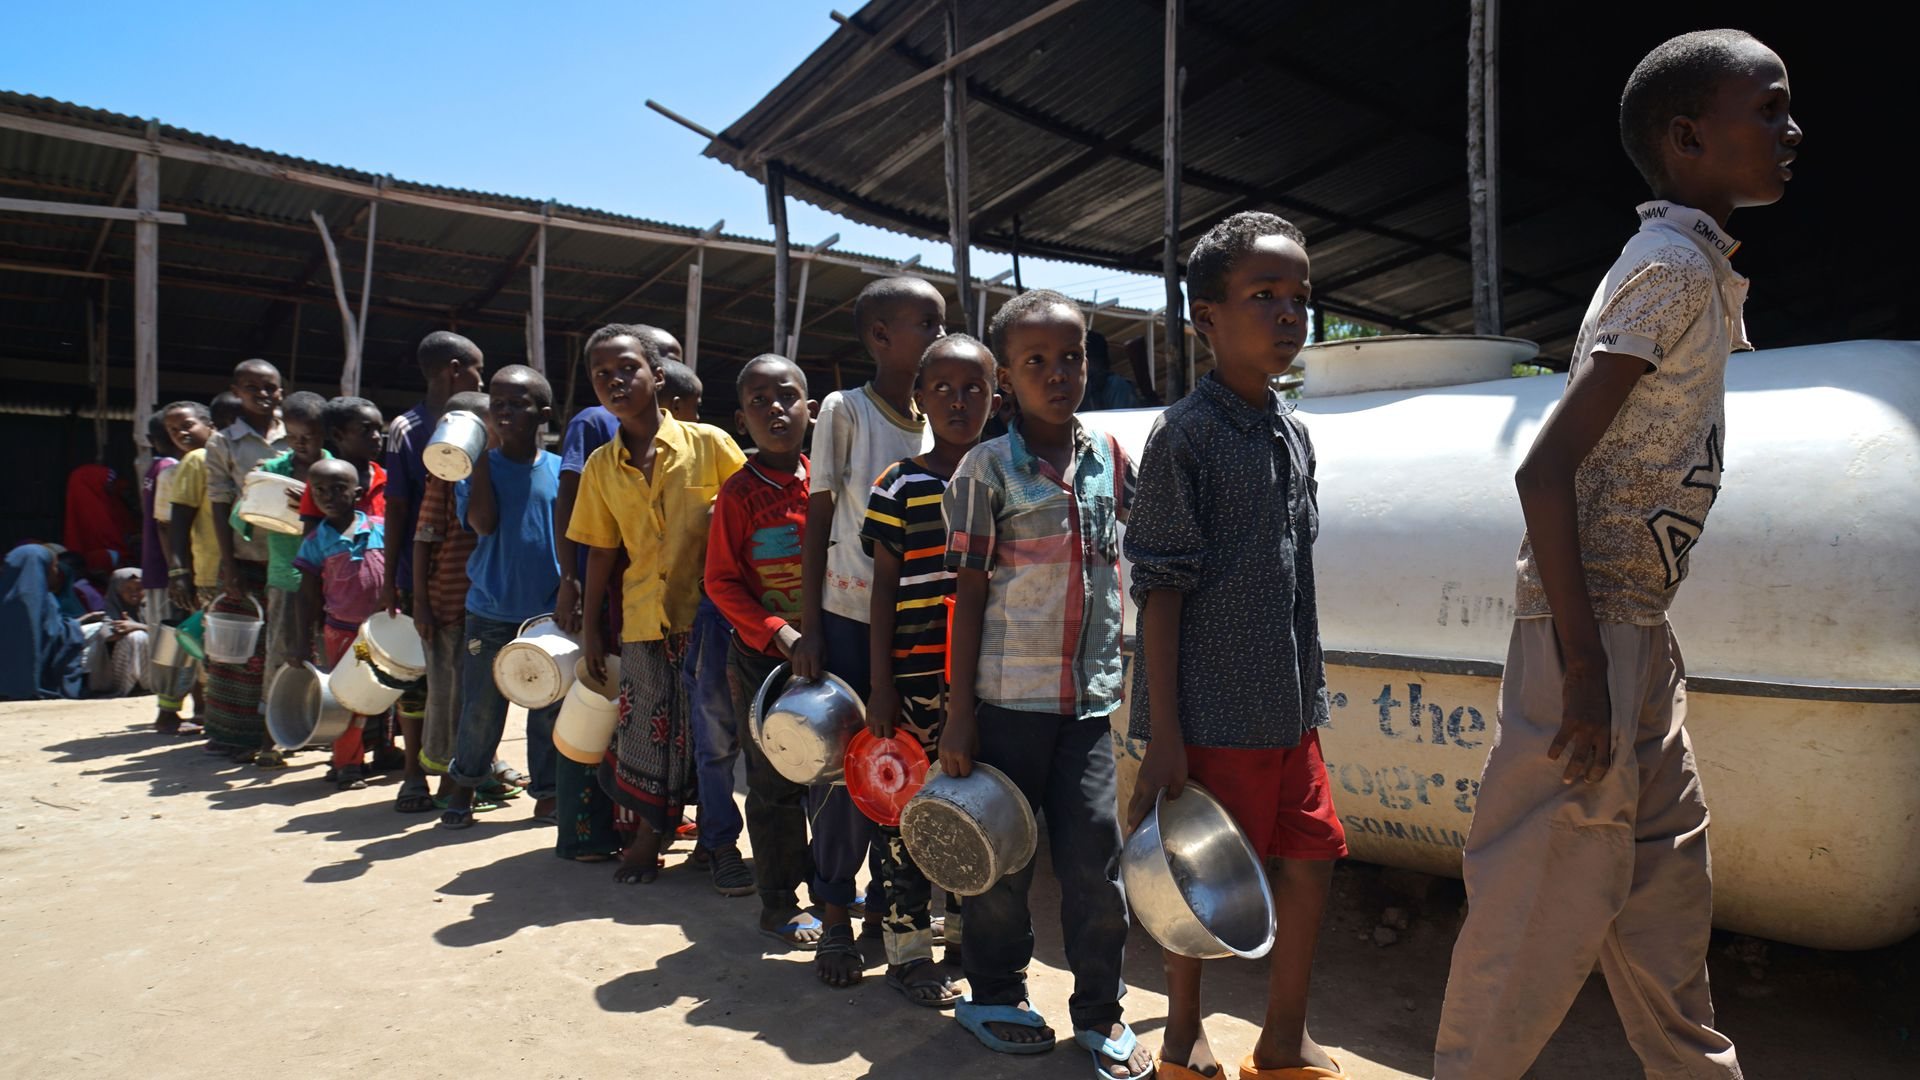 Young Somali boys stand in line carrying metal dishes